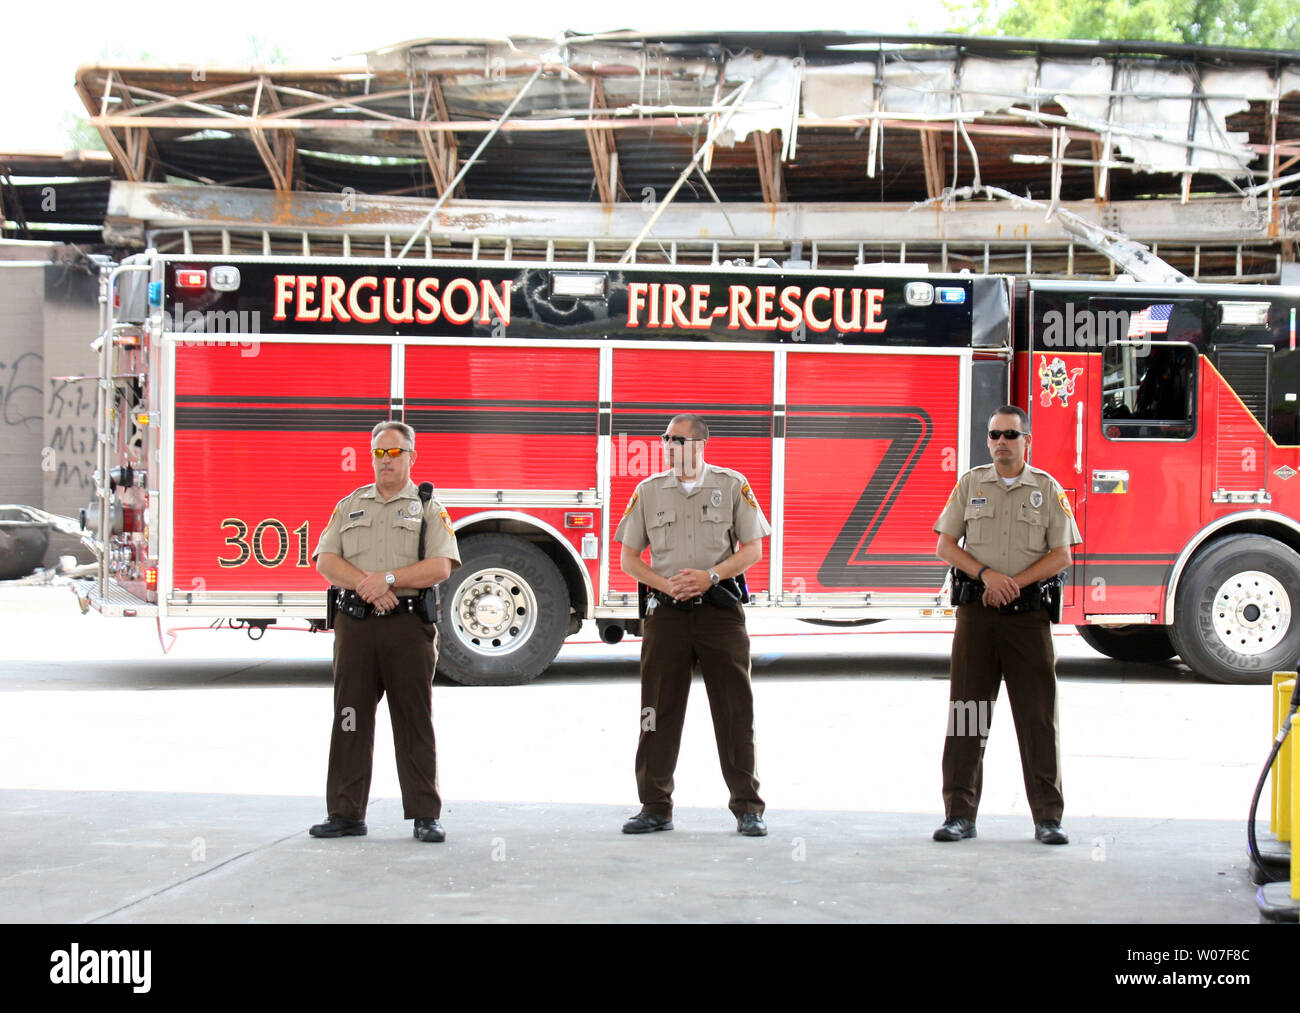 St. Louis County Police stand guard as firefighters return to the QuikTrip Gas station to put out hot spots following a night of looting, rioting and arsons in Ferguson, Missouri on August 11, 2014. People are upset because of the Ferguson Police shooting and death of an unarmed black teenager Michael Brown on August 9, 2014. In all about 20 businesses sustained damage after a candlelight vigil turned violent.   UPI/Bill Greenblatt Stock Photo